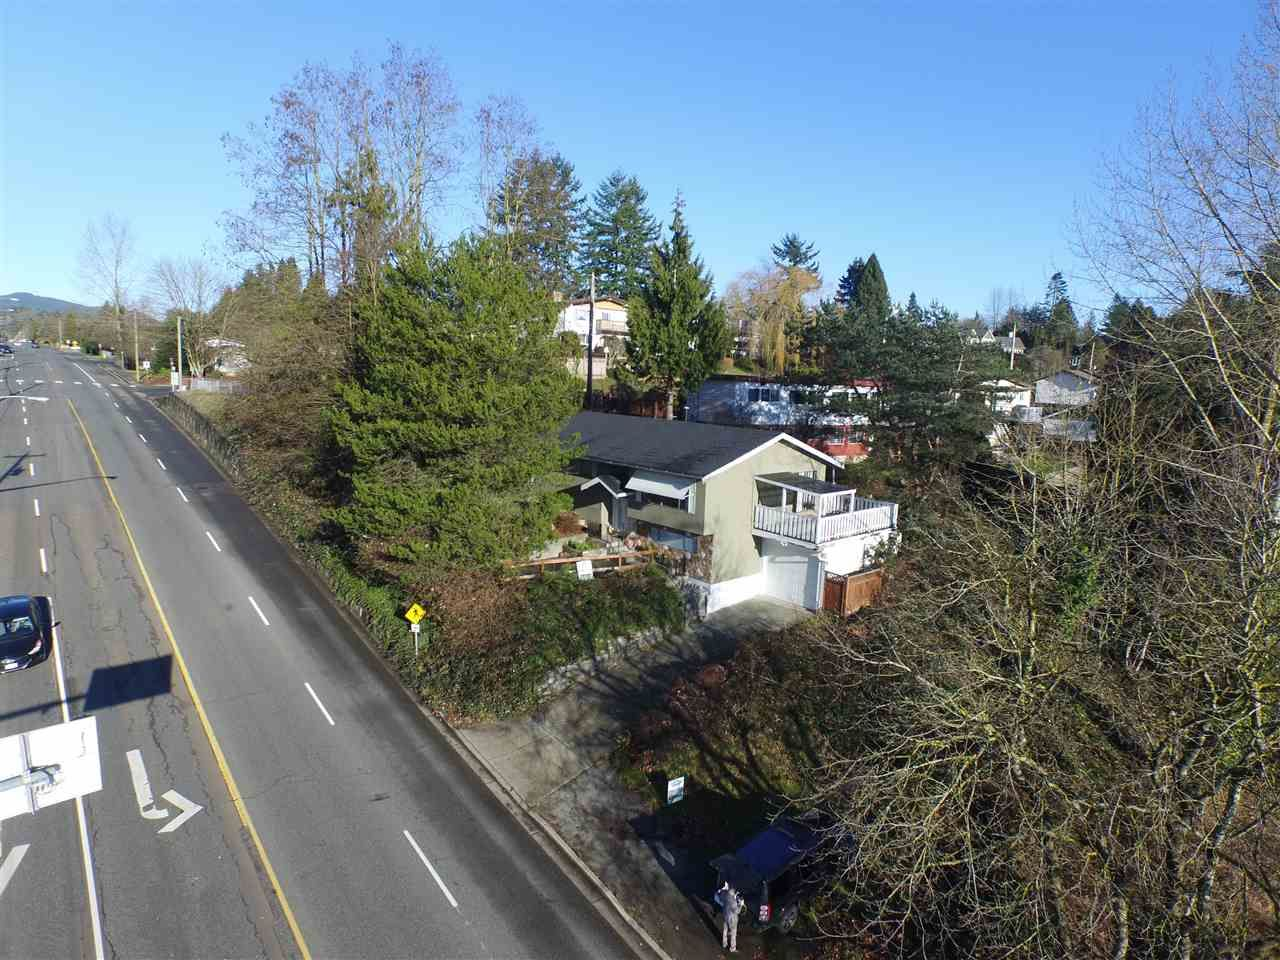 Photo 19: Photos: 7254 WREN STREET in Mission: Mission BC House for sale : MLS®# R2021052